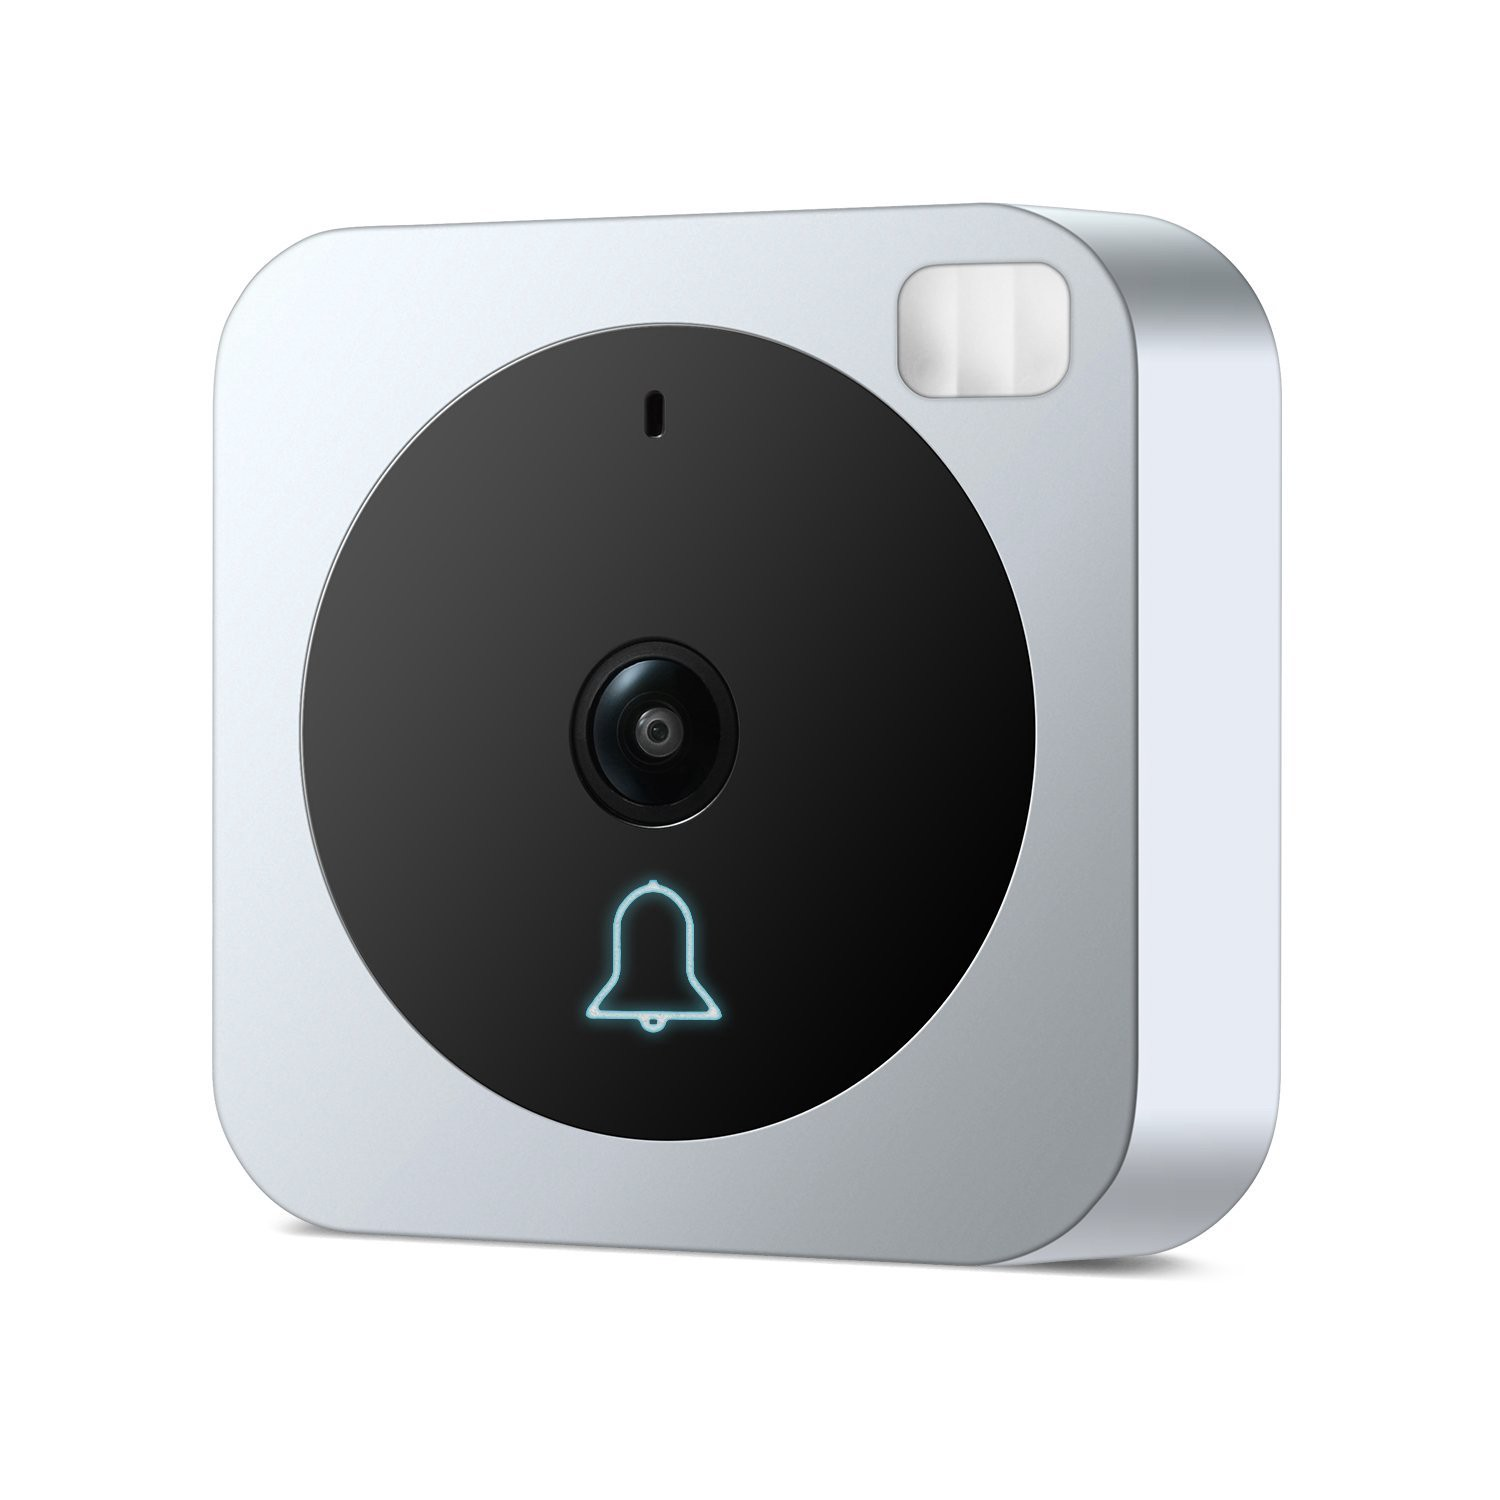 Wireless WiFi Video Doorbell Kit — VueBell Outdoor Wired Doorbell ...